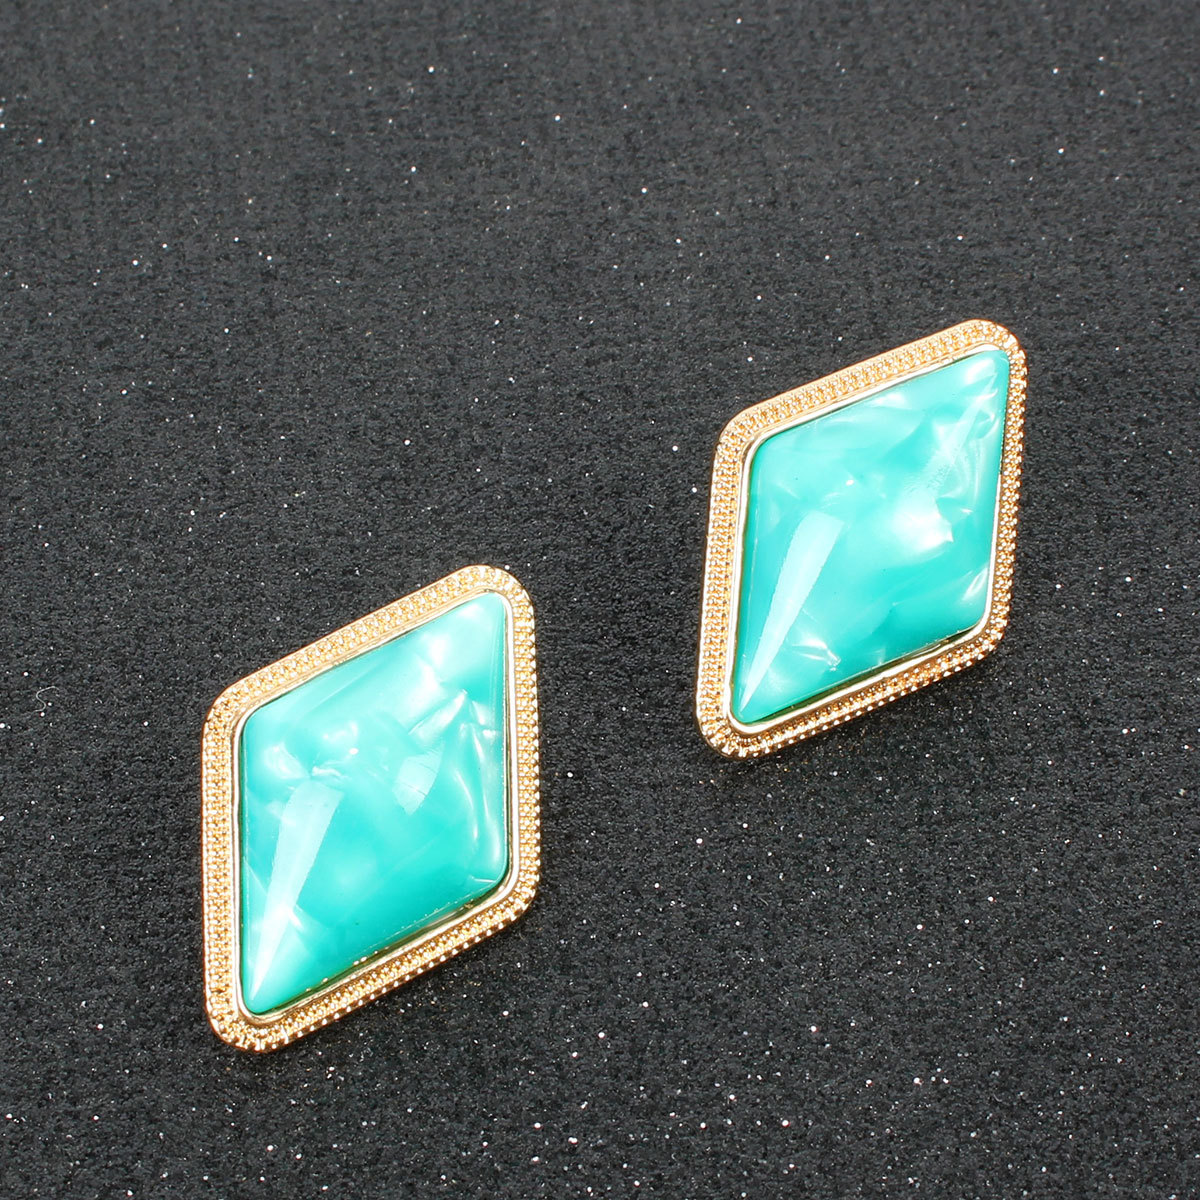 Fashion simple quadrilateral resin earrings NHCT155127